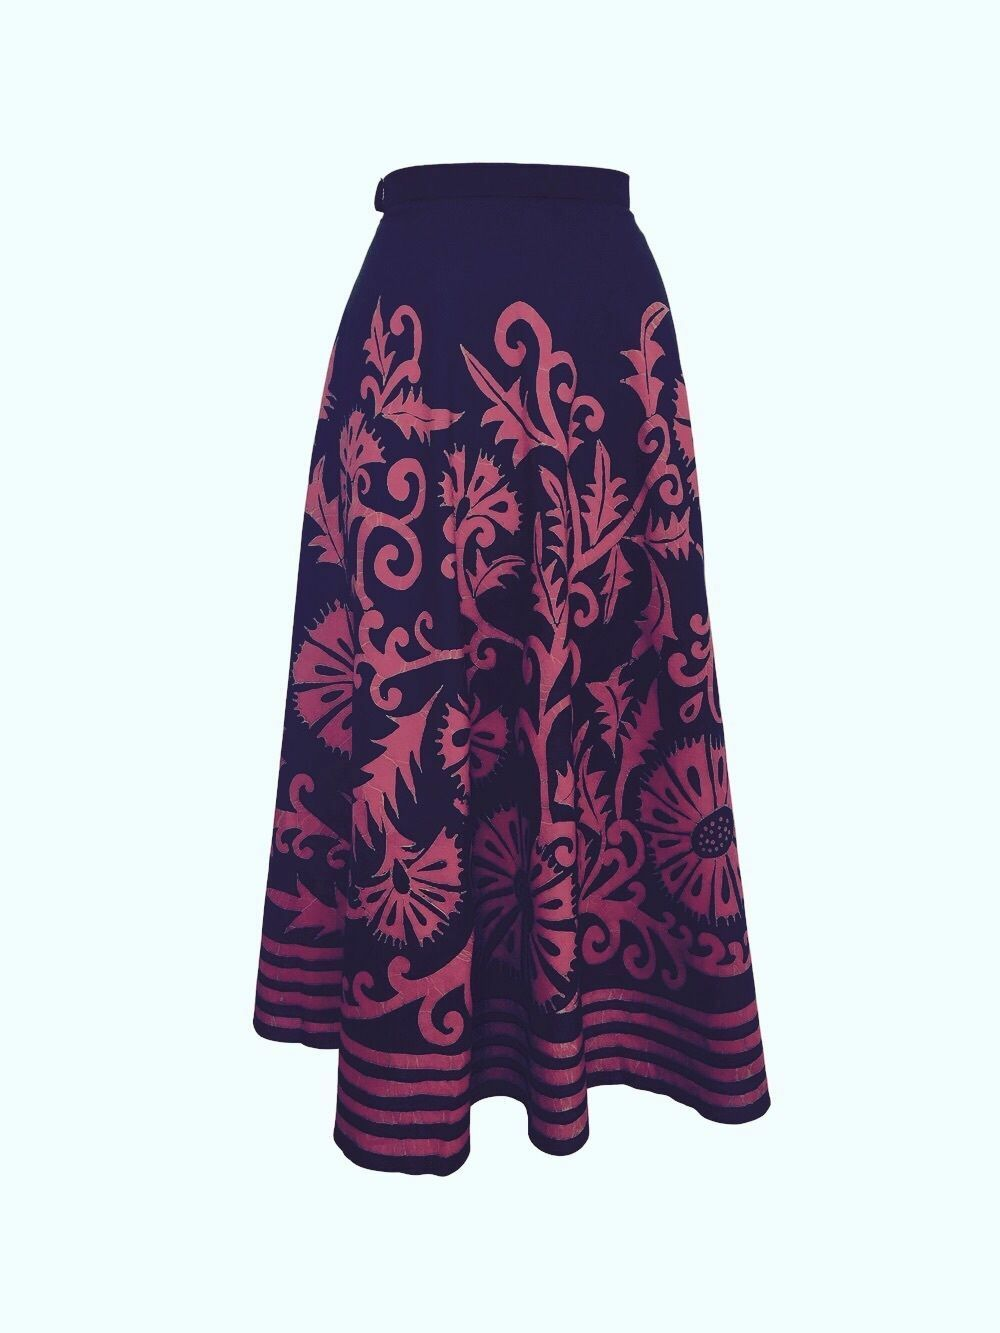 NWT  388 ANTHROPOLOGIE ESVA PURPLE MIDI SKIRT by HARARE S, M